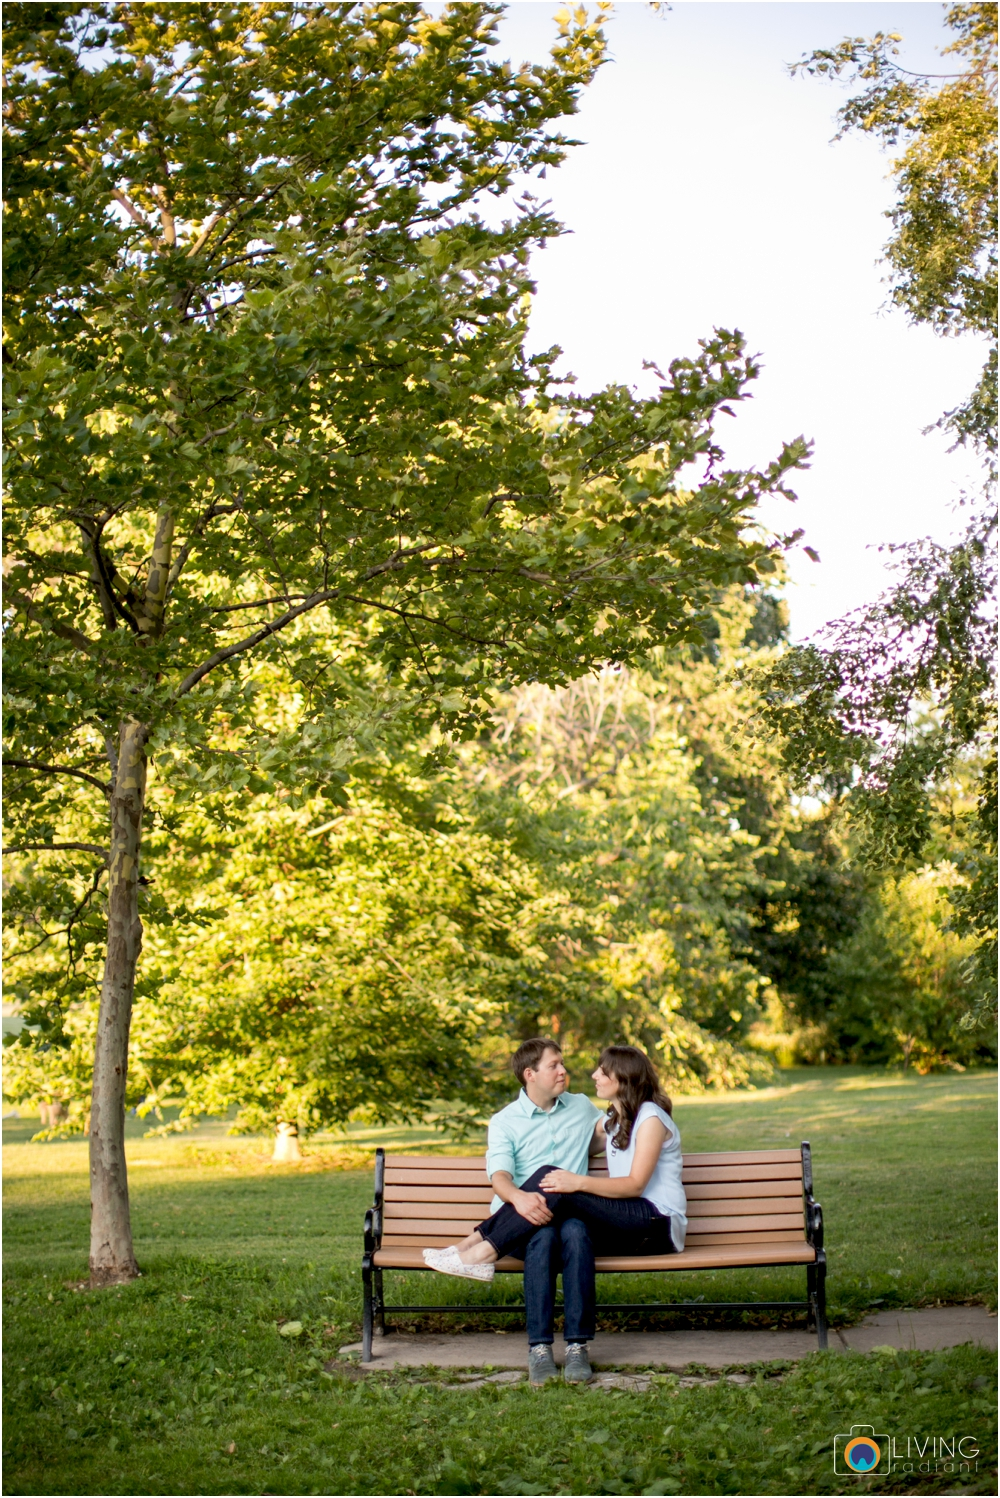 eva-dave-engaged-patterson-park-baltimore-downtown-living-radiant-photography-photos_0029.jpg